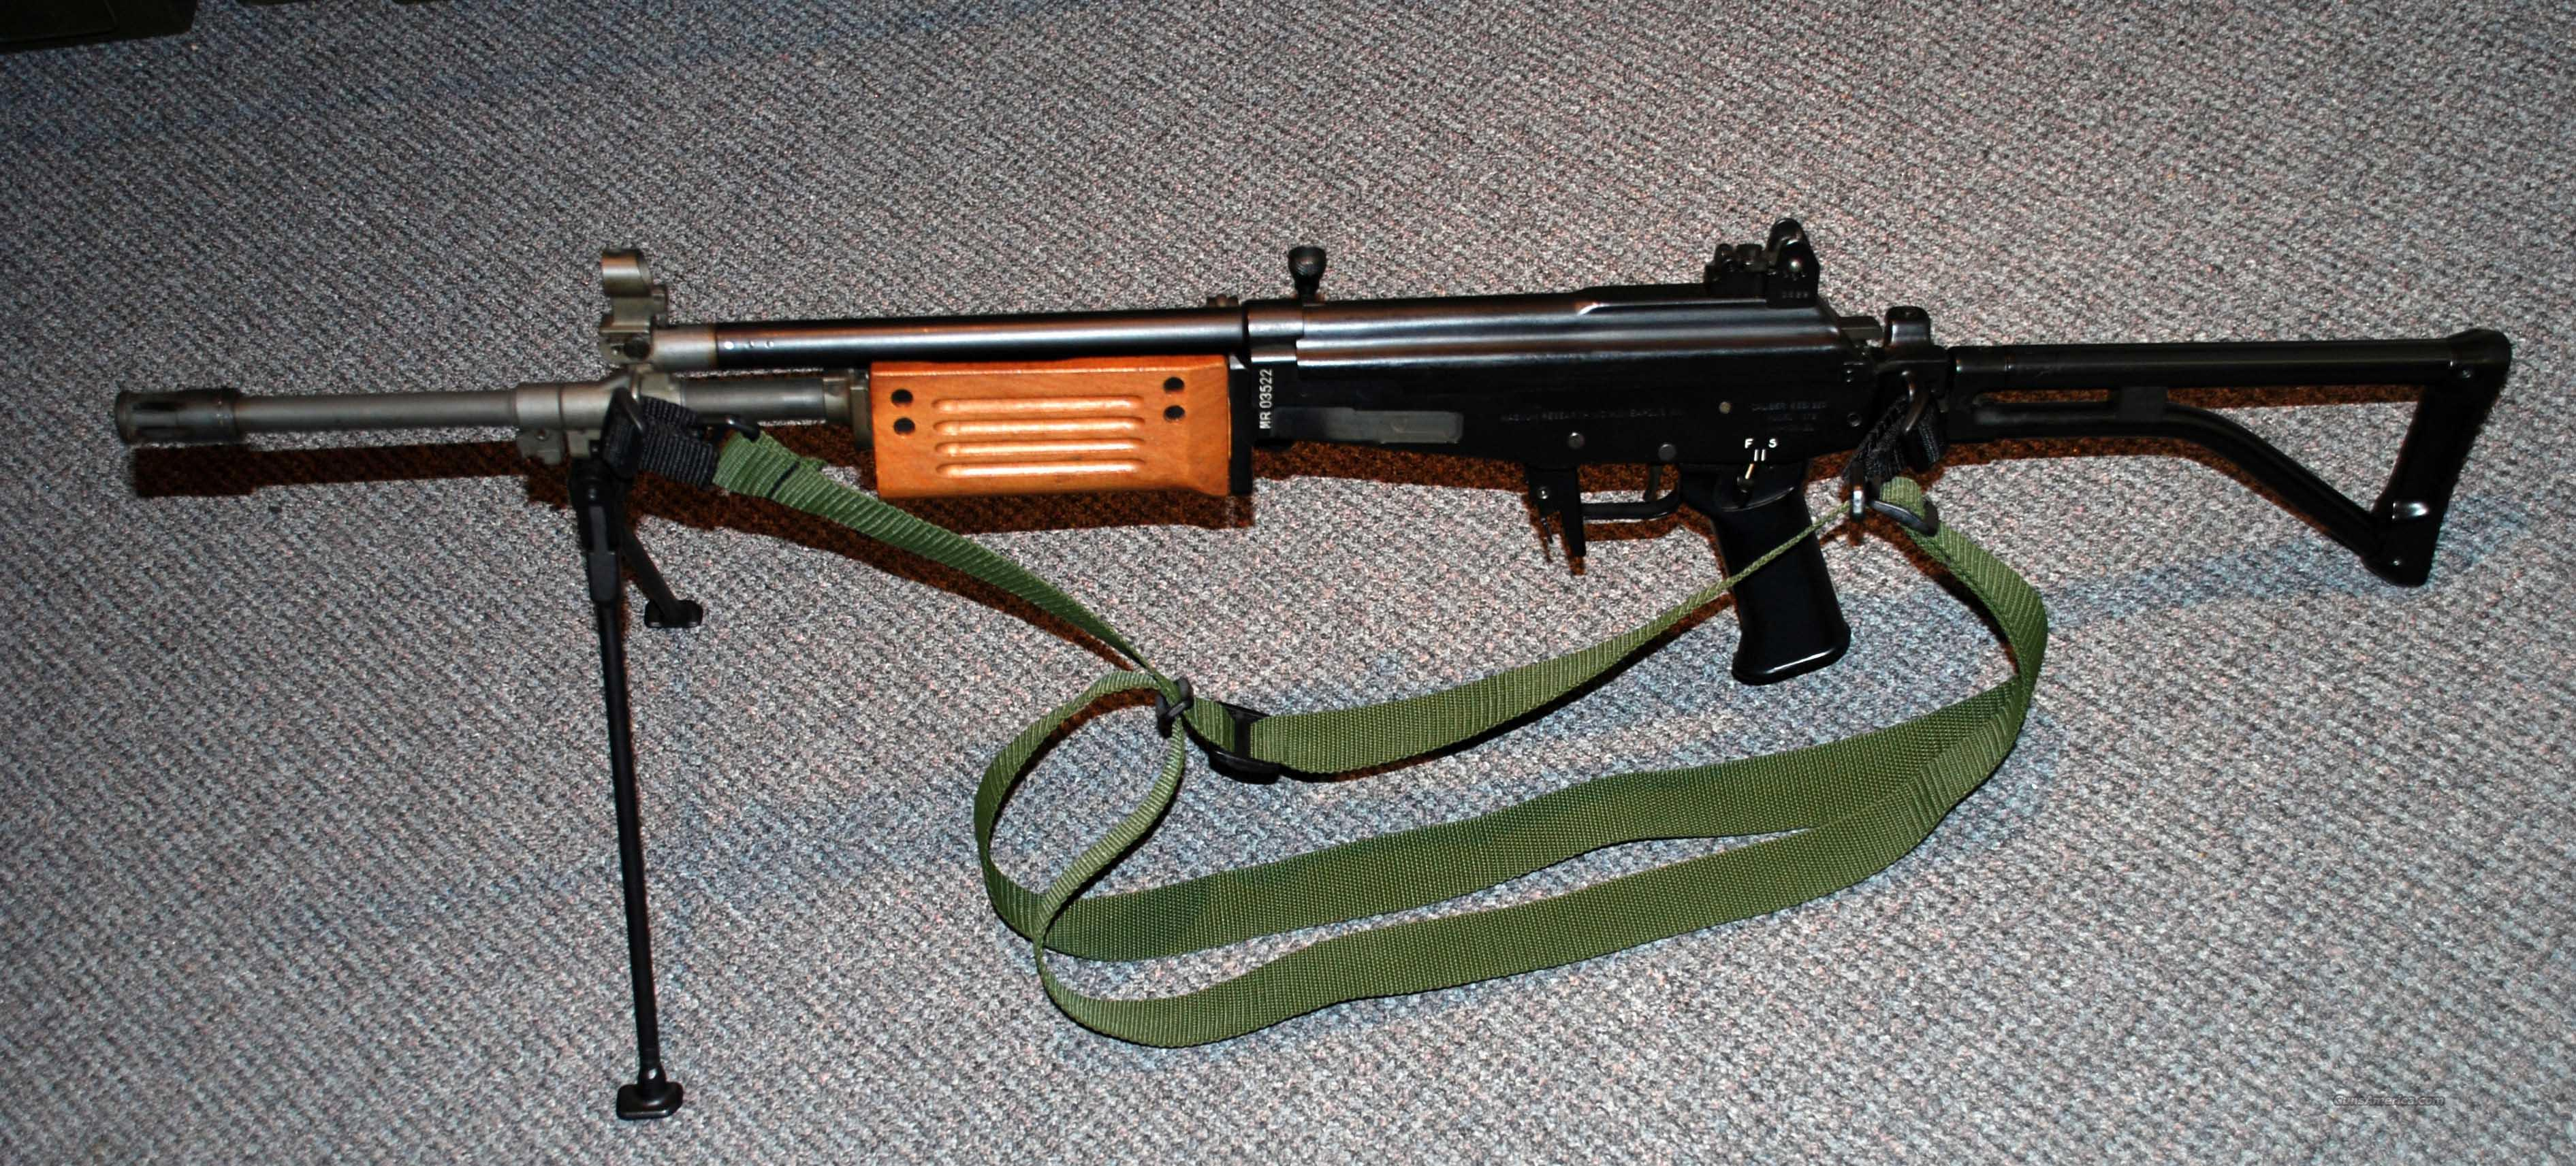 Galil Model 372 ARM 5.56mm   Guns > Rifles > Galil Rifles